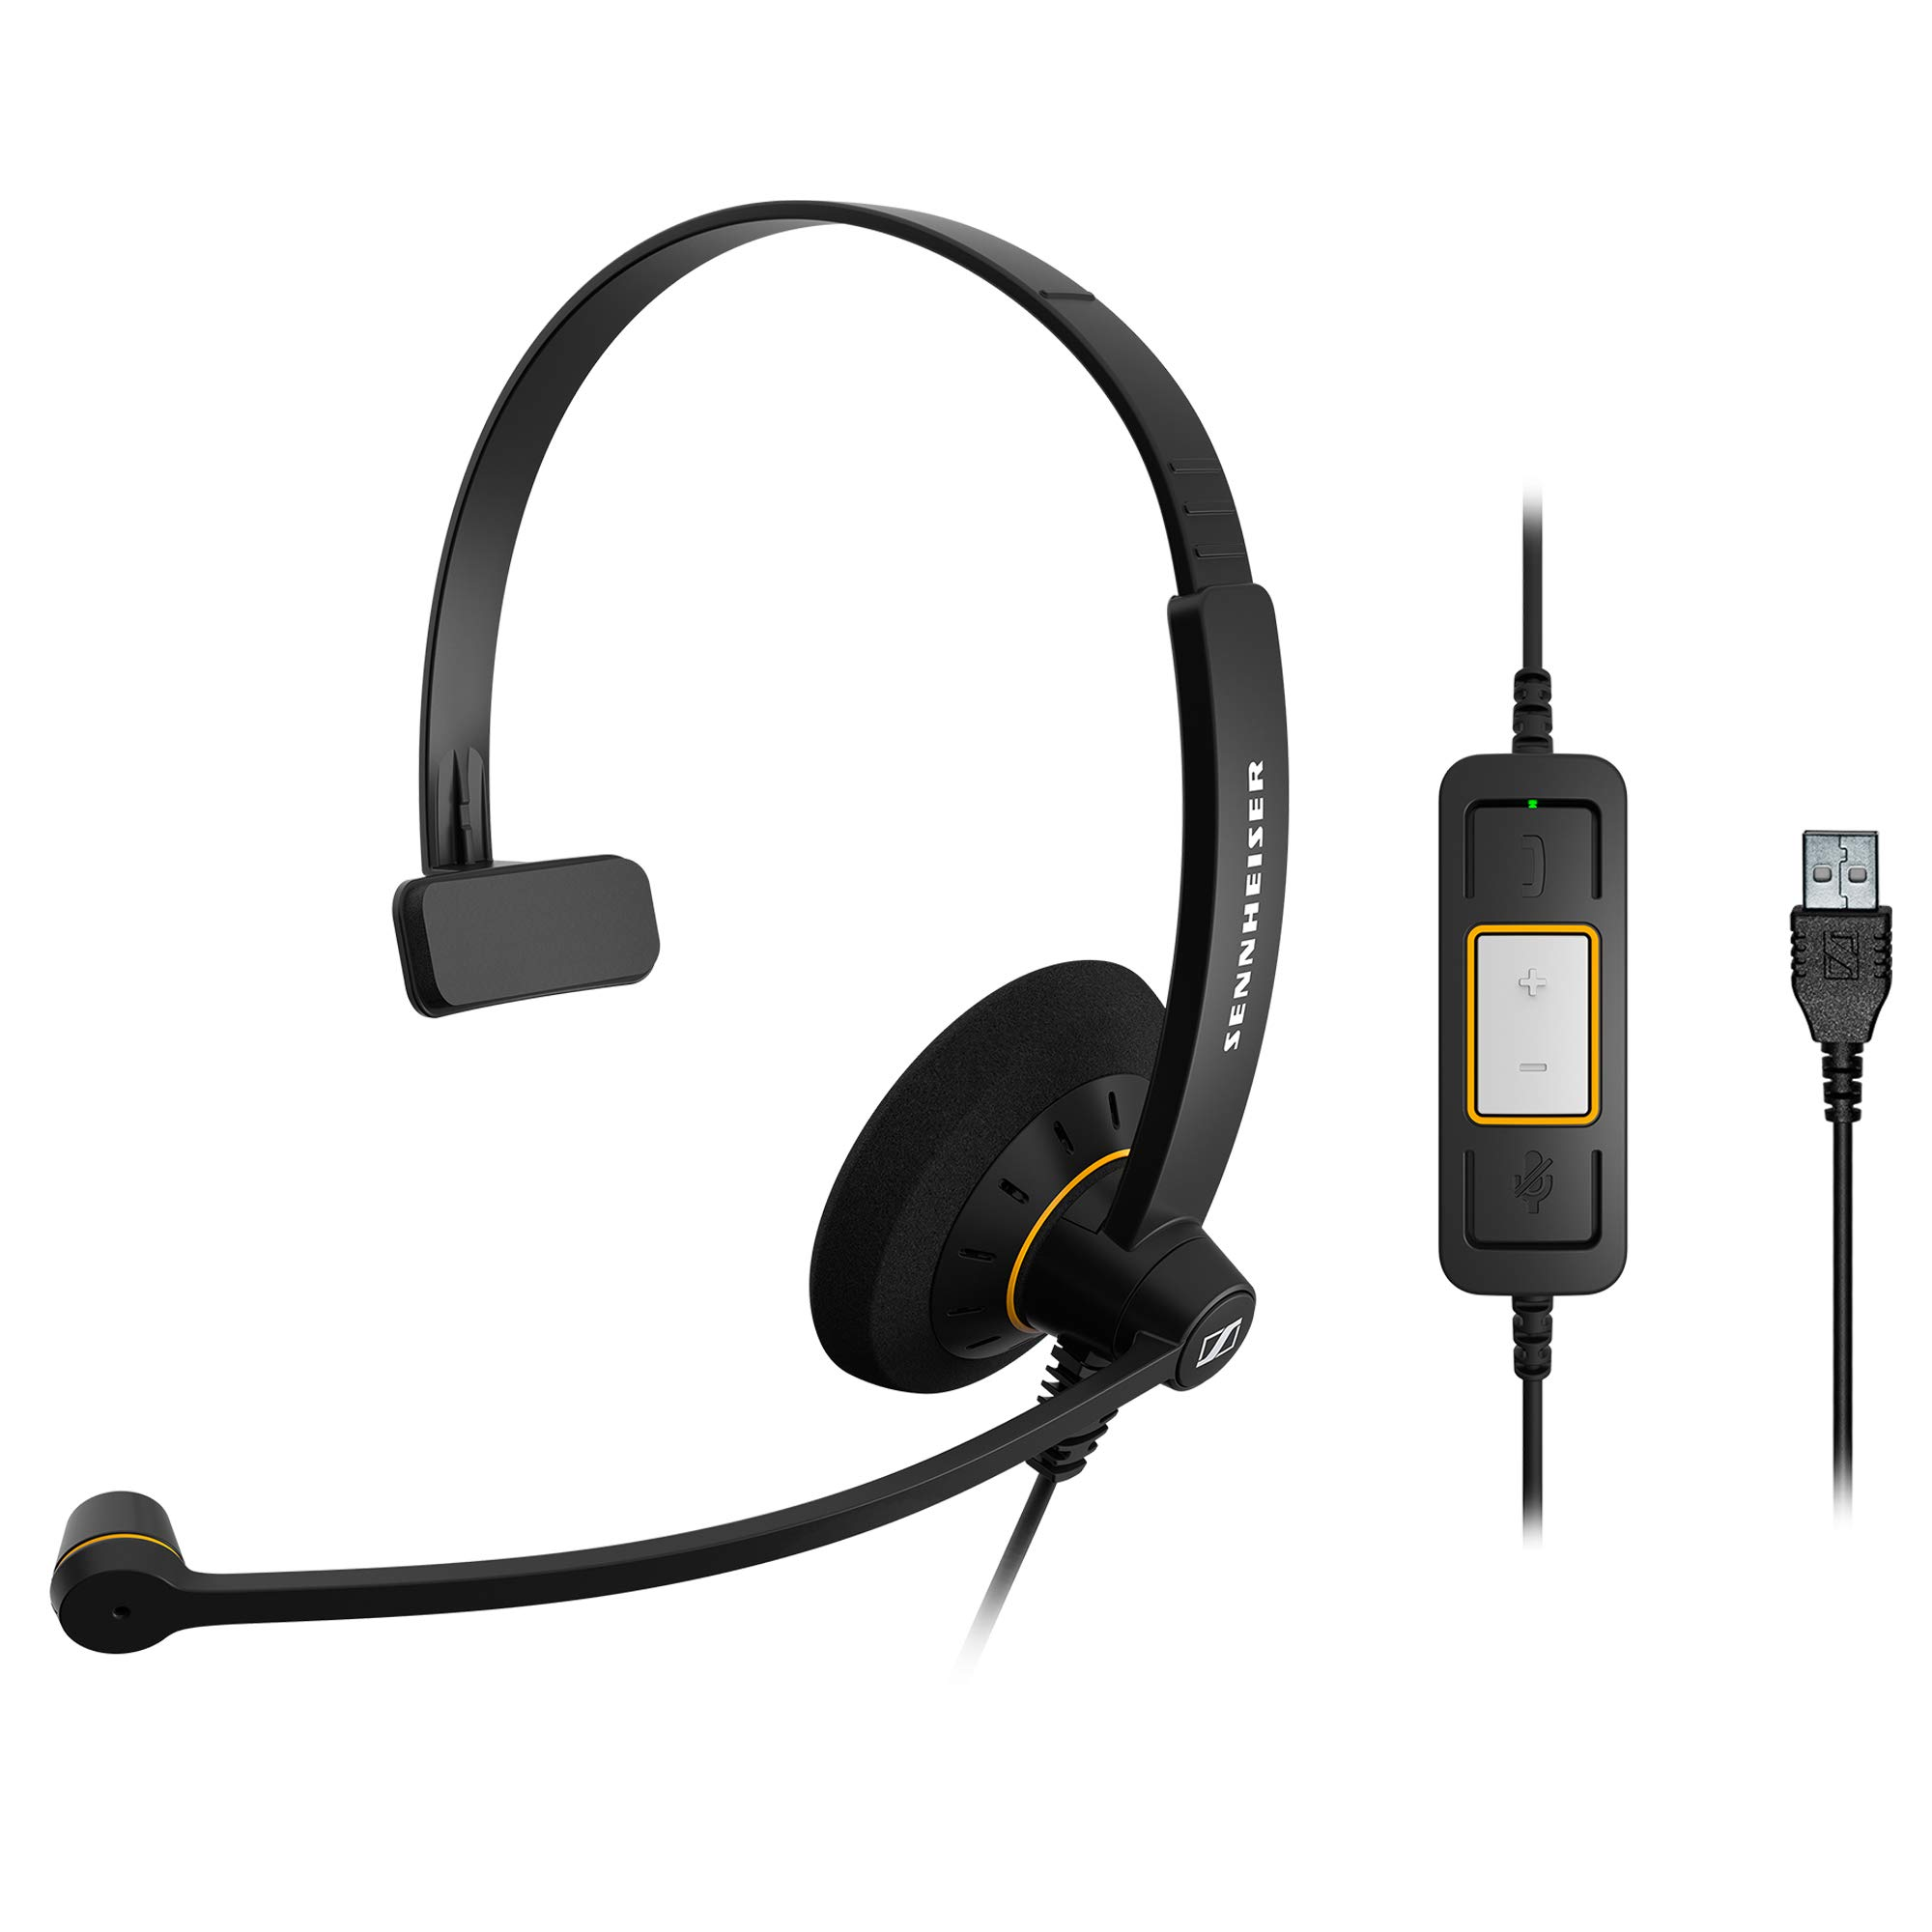 Sennheiser SC 30 USB ML (504546) - Single-Sided Business Headset | For Skype for Business | with HD Sound, Noise-Cancelling Microphone, & USB Connector (Black) by Sennheiser Consumer Audio